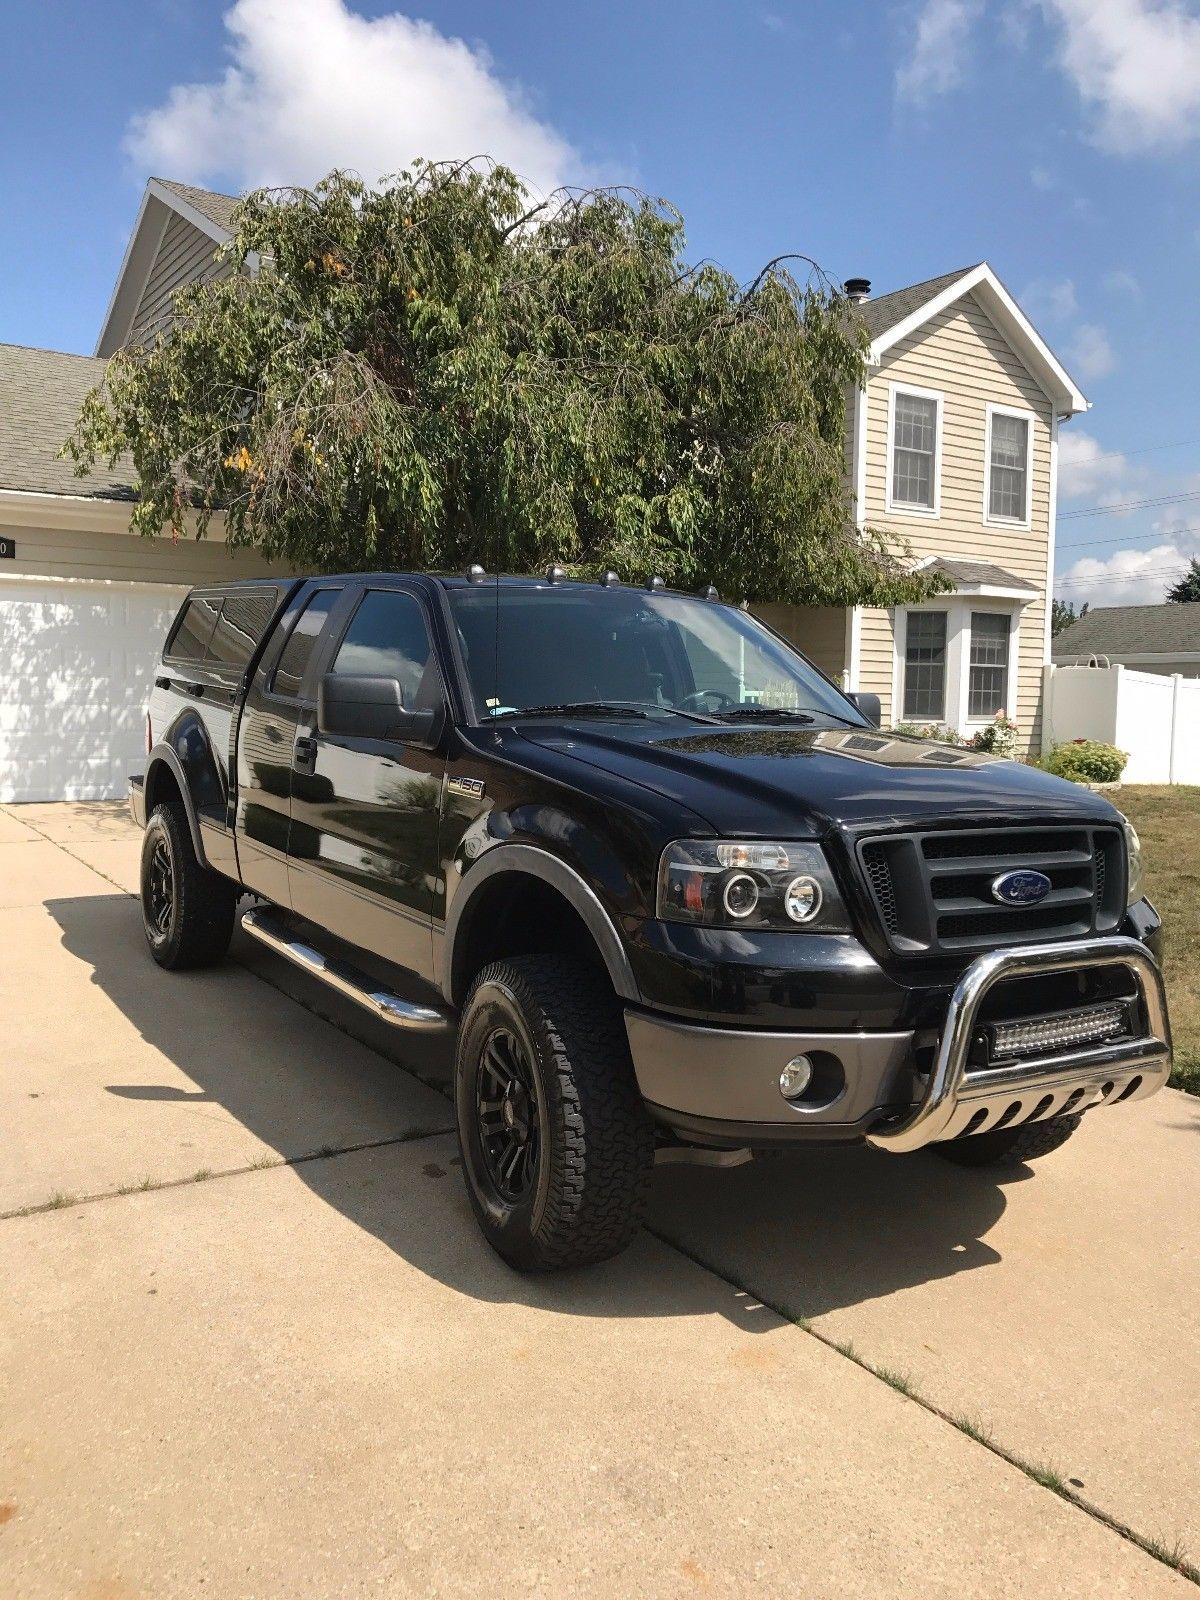 Loaded 2008 Ford F 150 Flareside Supercab Lifted Trucks Lifted Trucks Chevy Trucks